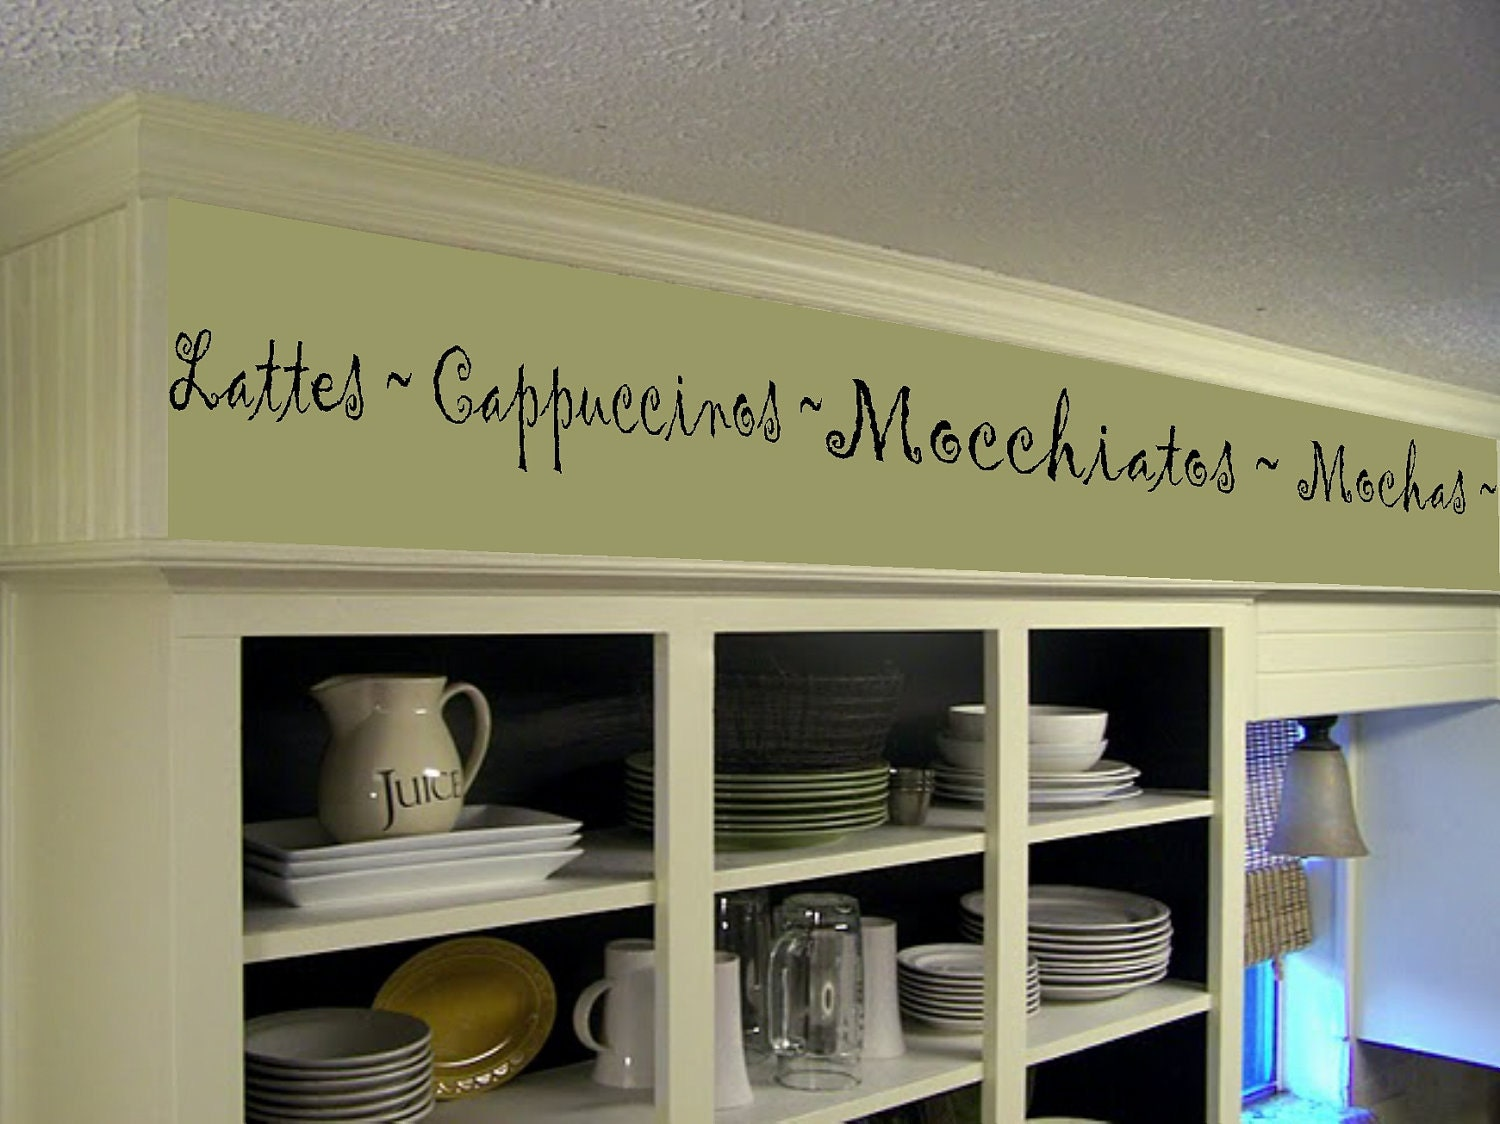 Coffee kitchen words border vinyl wall decor cafe vinyl wall - Decals for kitchen cabinets ...